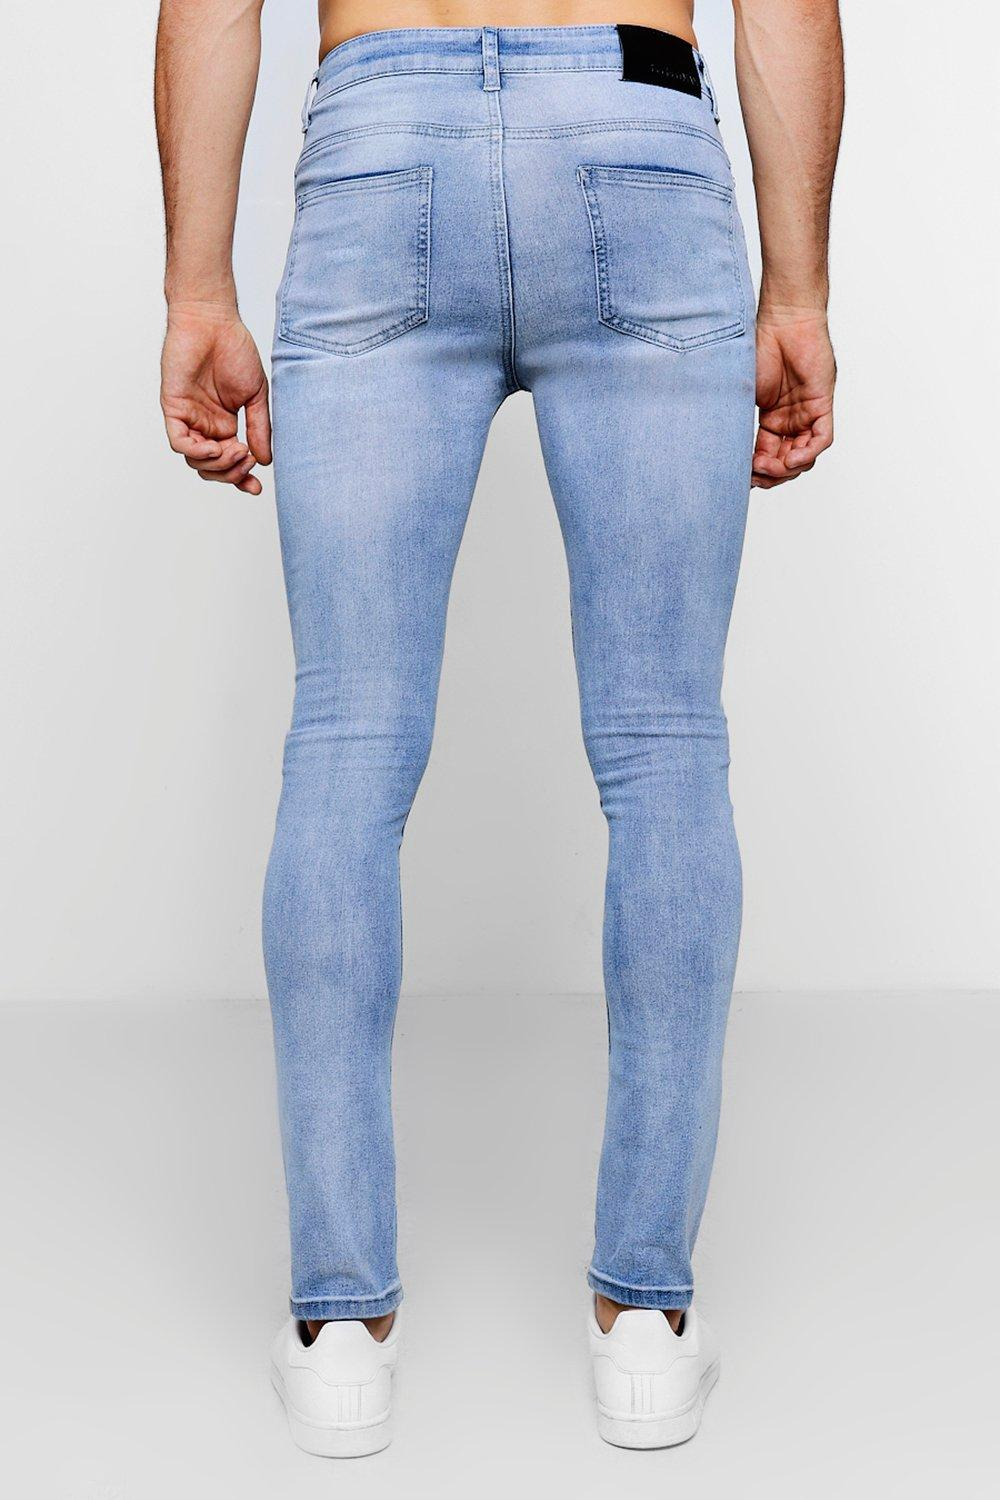 Ripped Over pale Jeans blue All Fit Super Skinny v1ZUBw